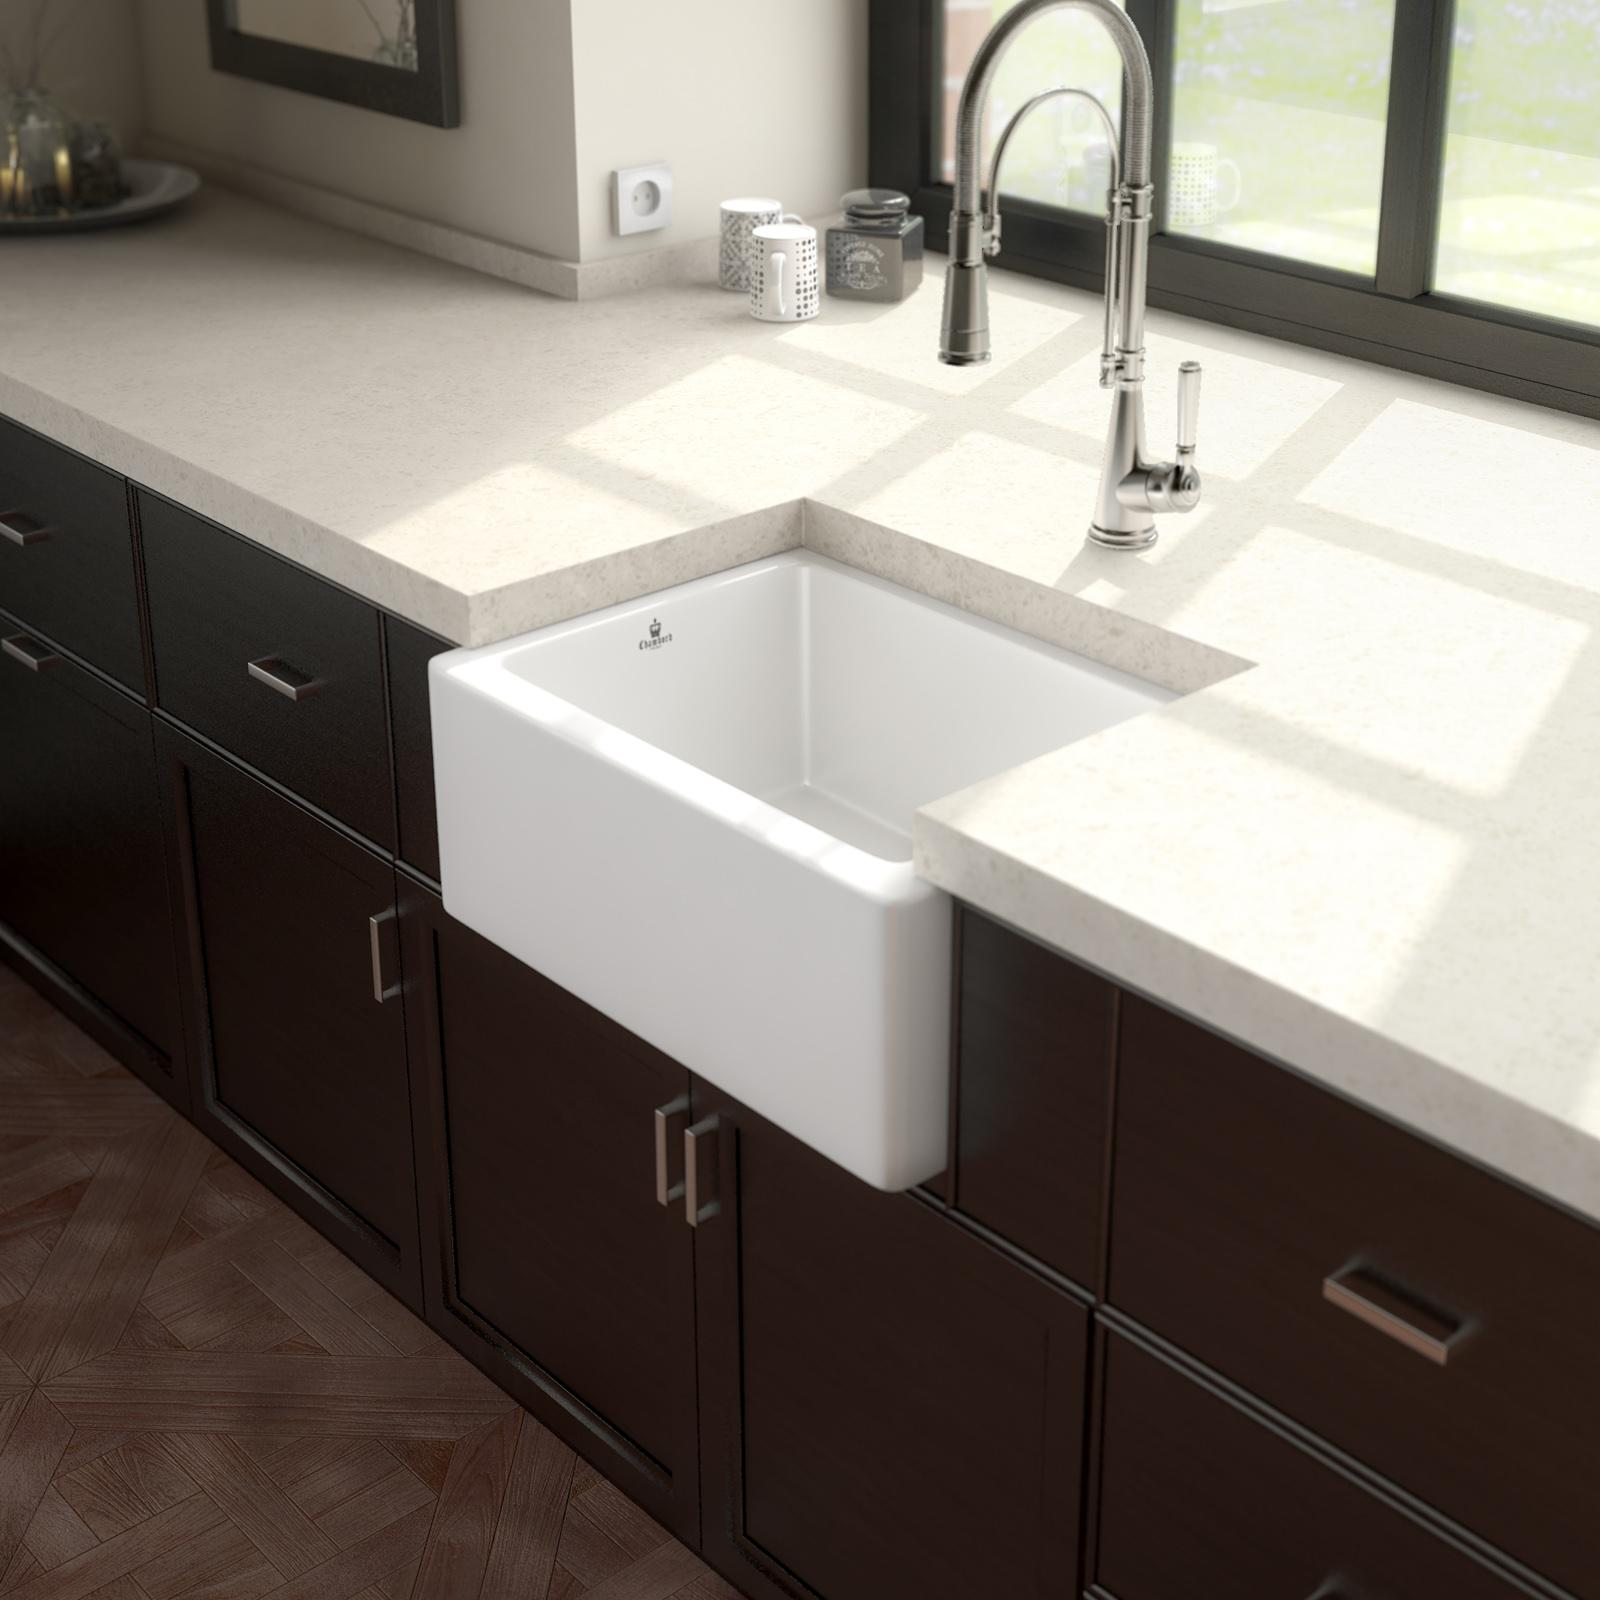 High-quality sink Philippe I - single bowl, ceramic - ambience 1